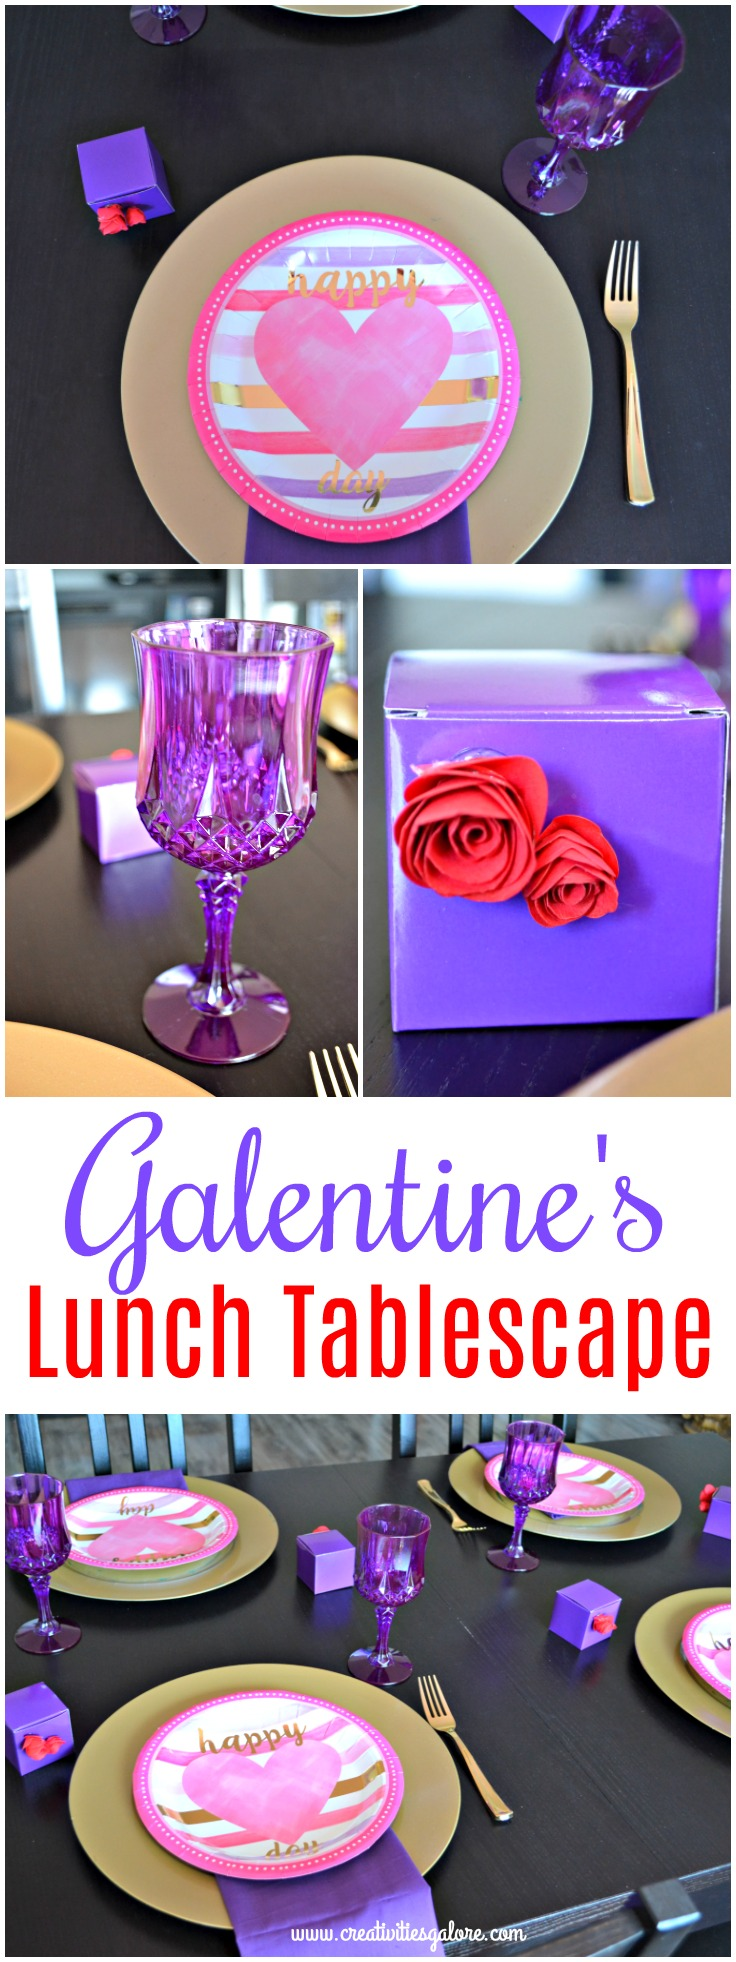 Galentine's lunch tablescape